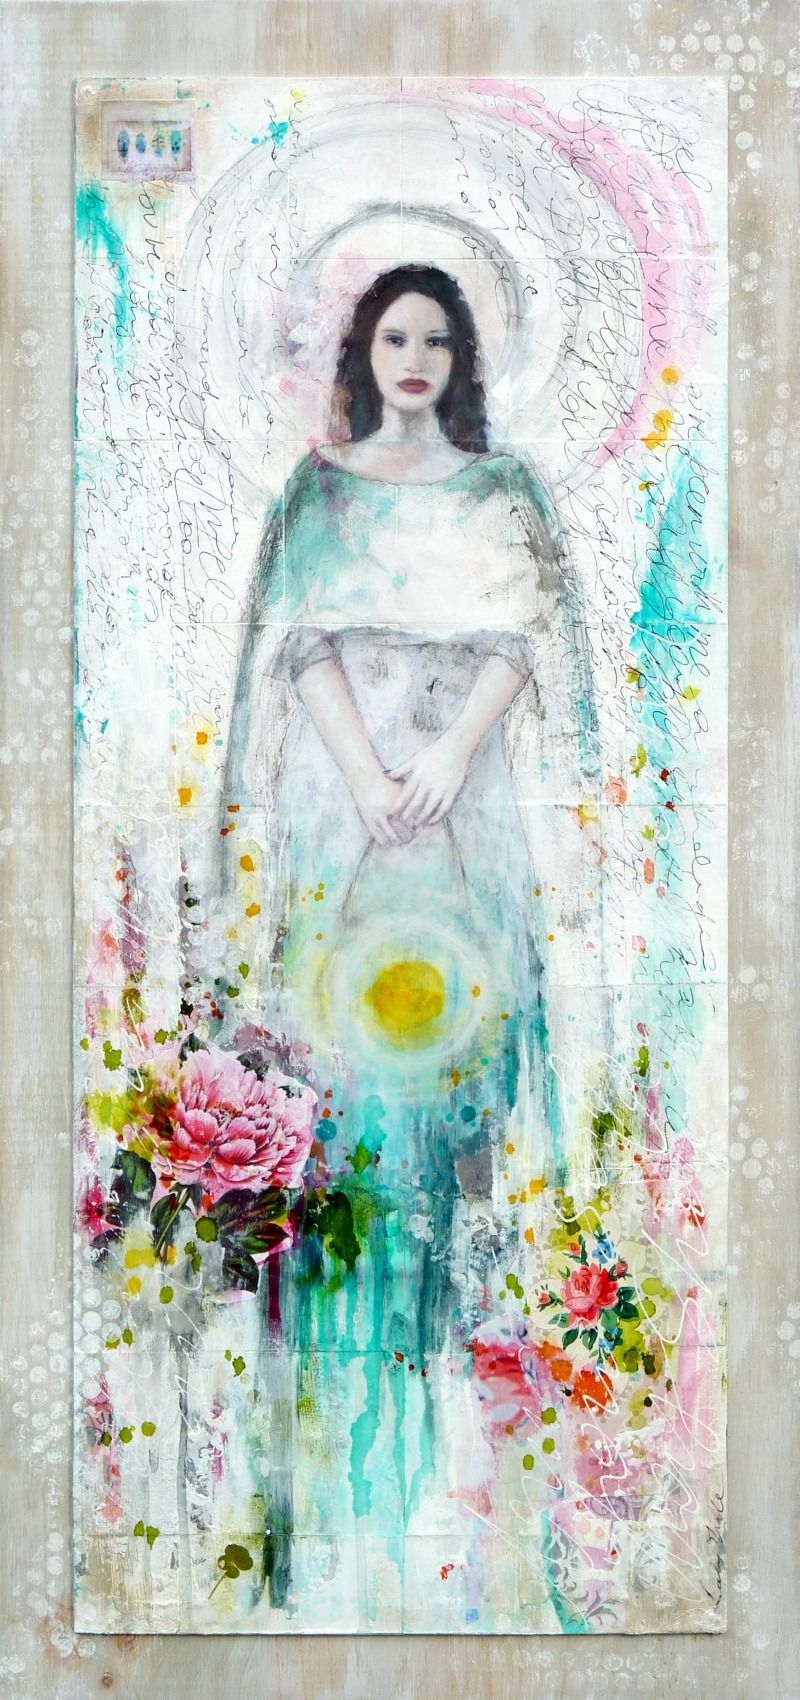 Guardian of Dawn : mixed media painting by Laly Mille